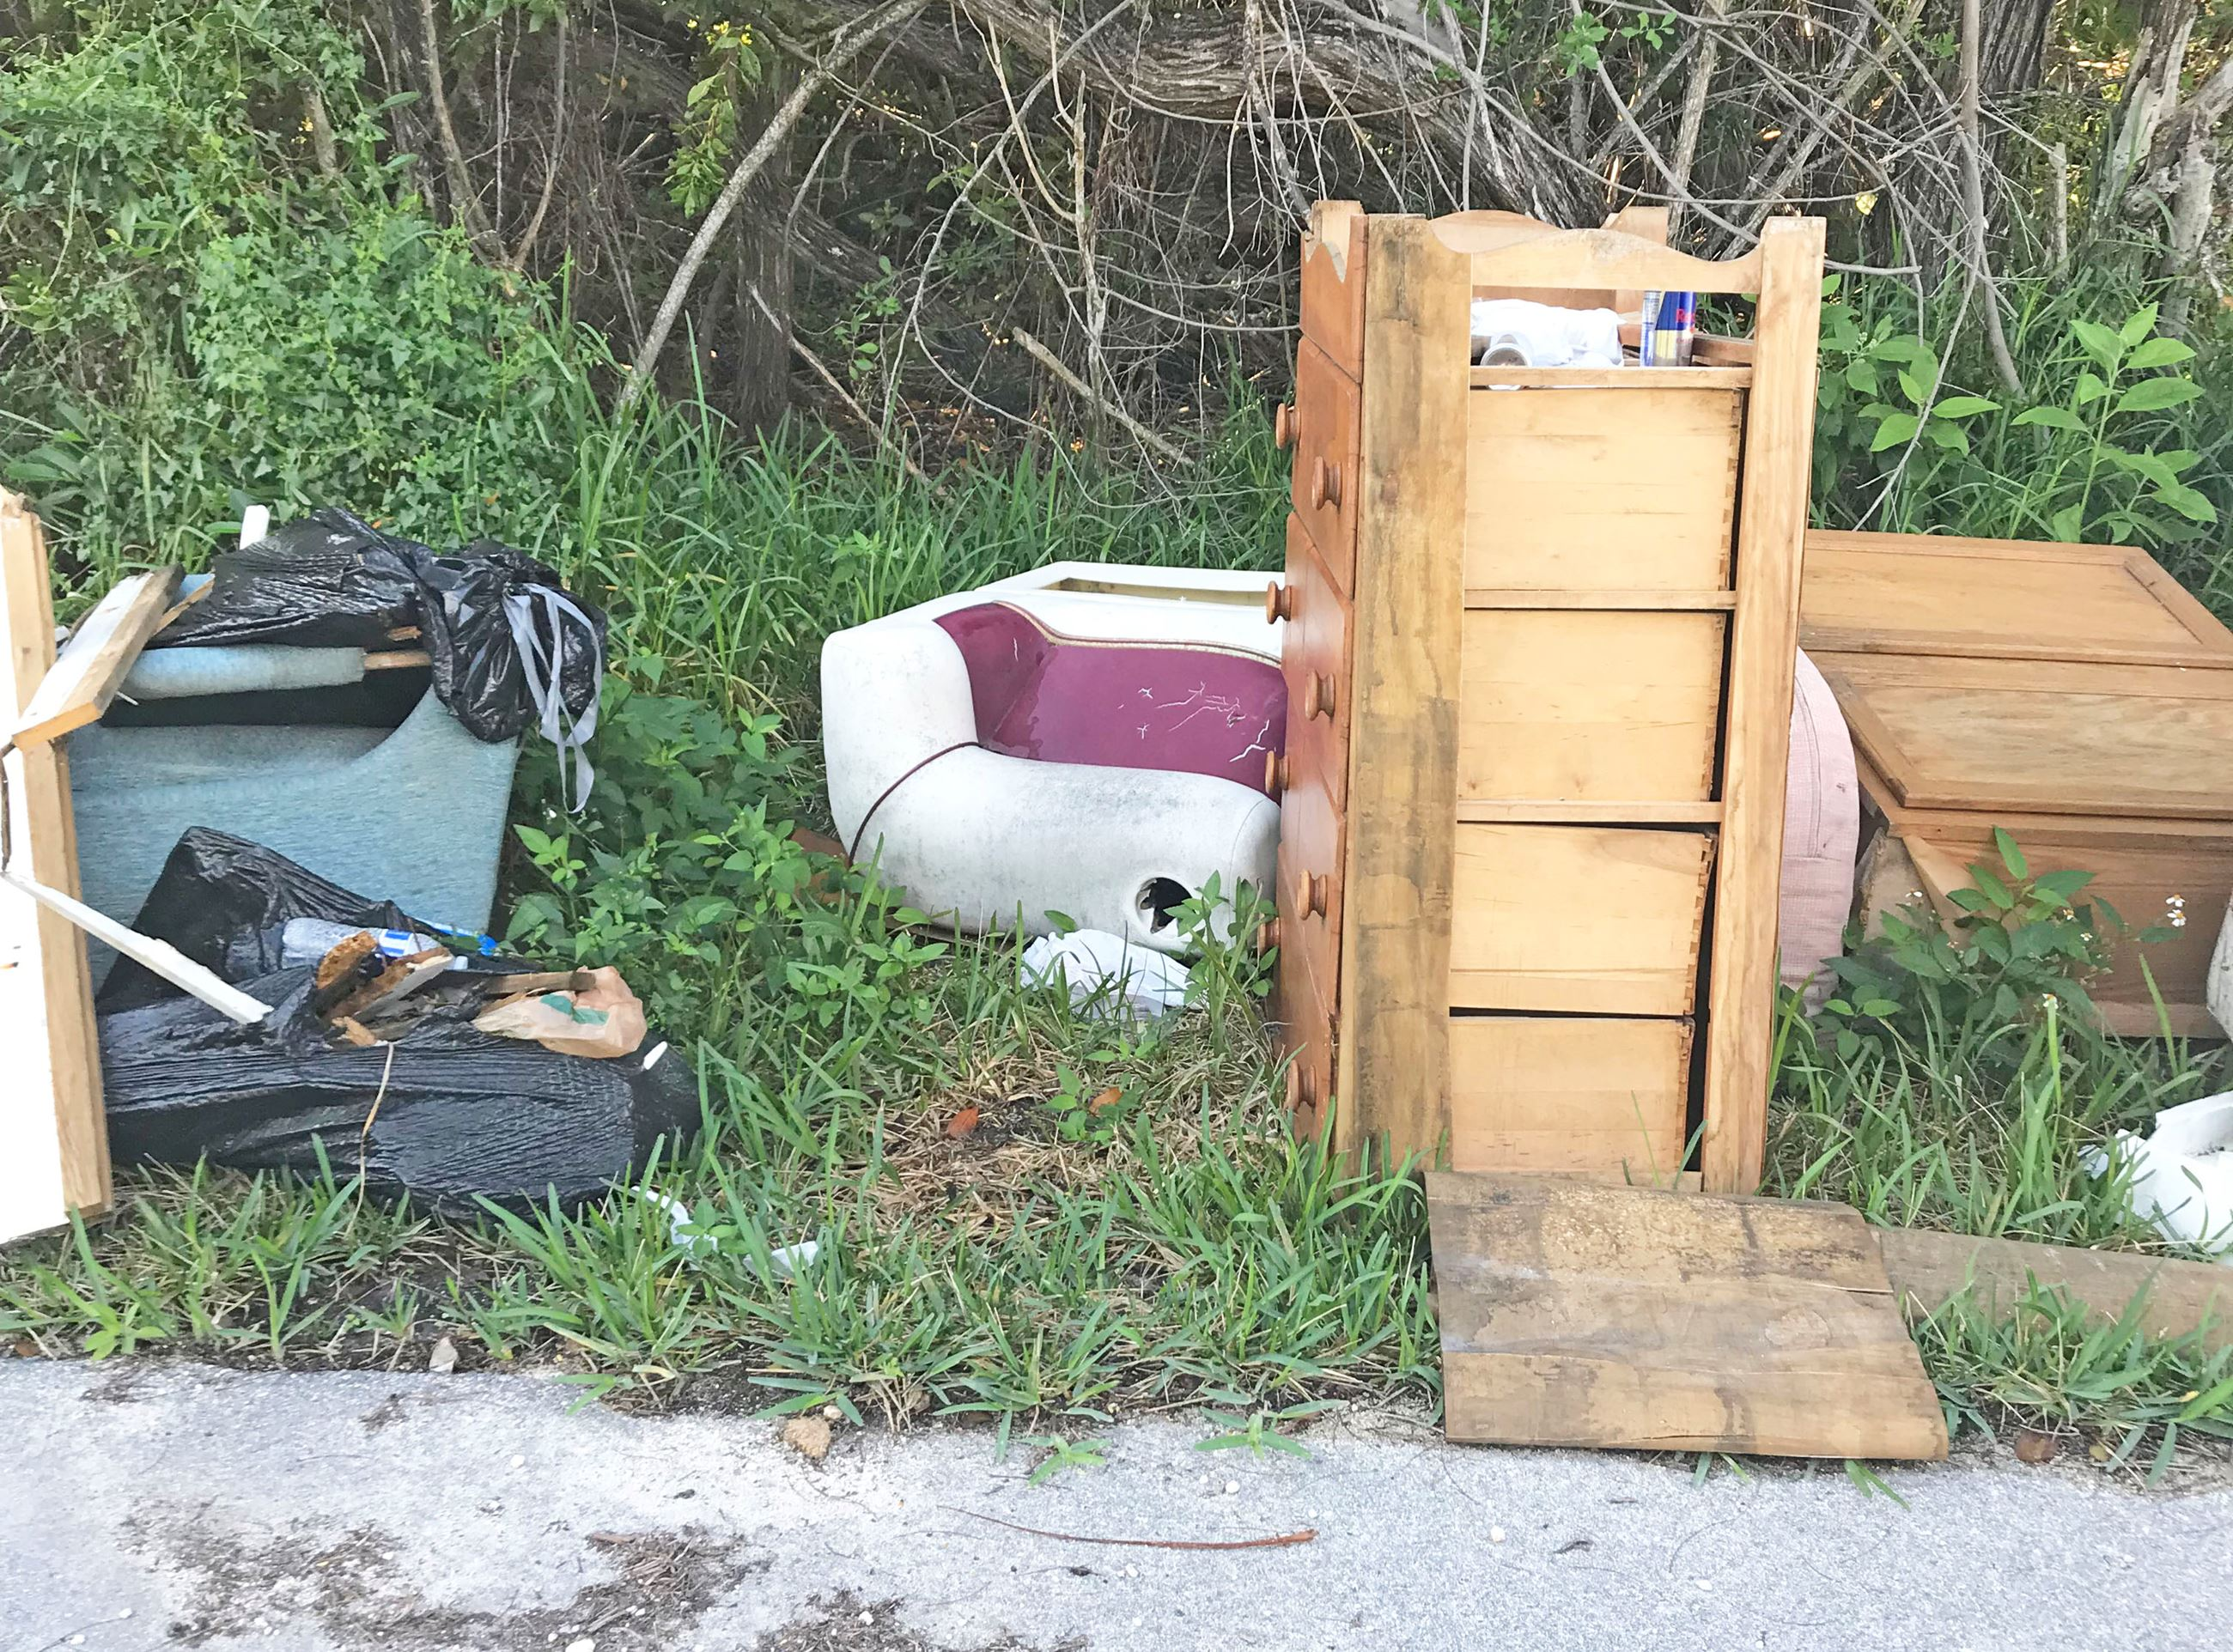 Right of Way Illegal Dumping